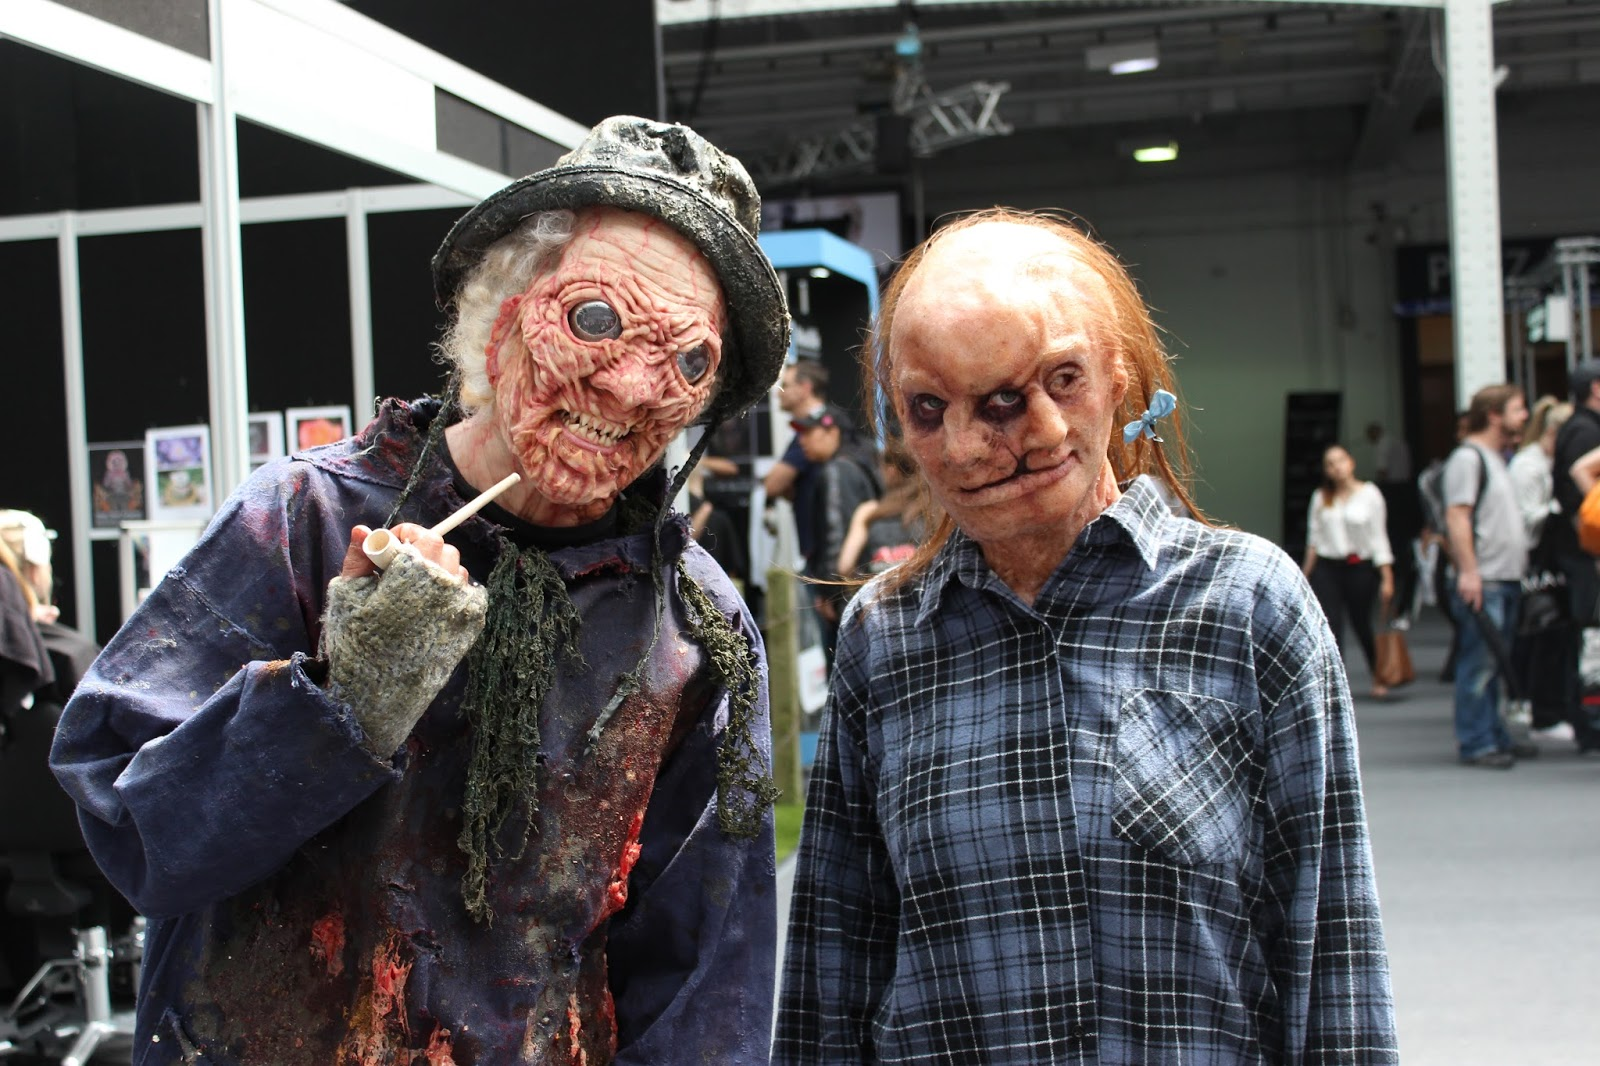 IMATS london 2014 body painting zombie prosthetic faces